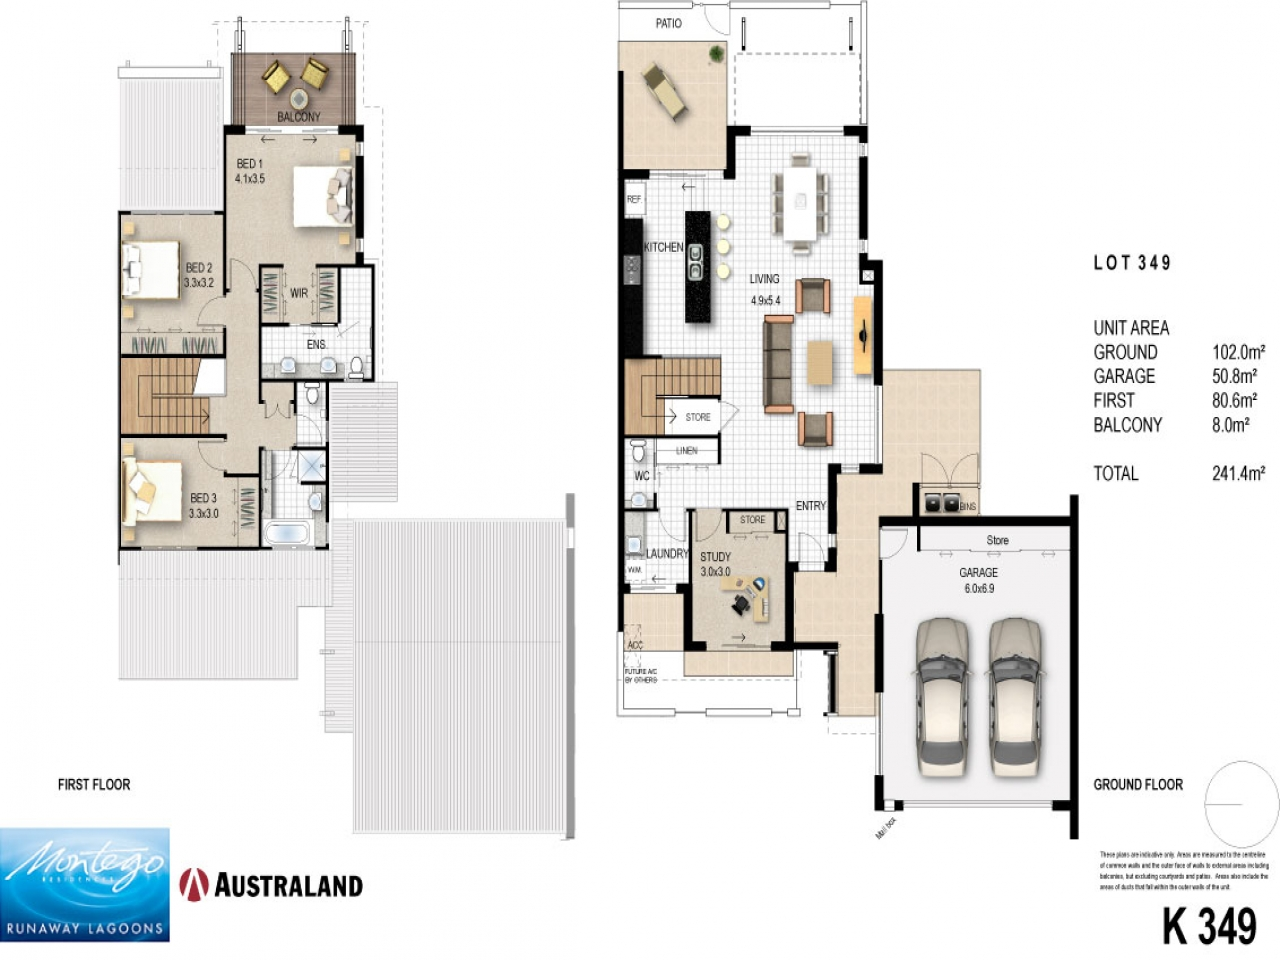 Architectural designs house plans modern architectural - Modern architectural designs floor plans ...